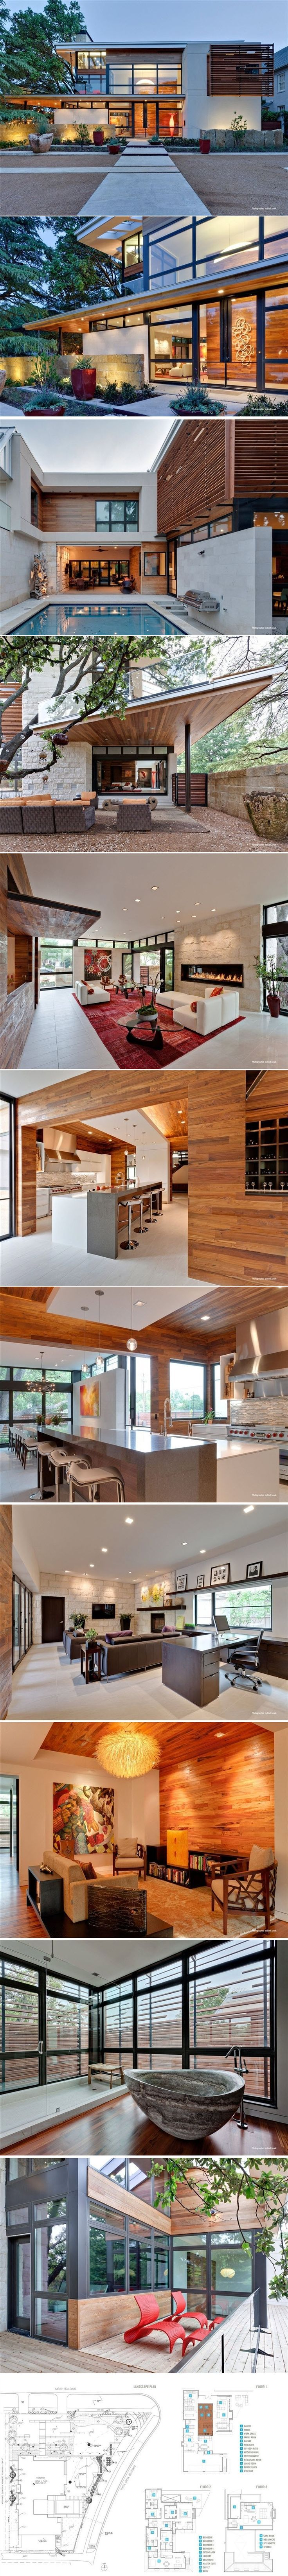 nobby design better homes and gardens submissions. Home sweet home  Stunning architecture and breath taking designs Pools gardens that look 119 best Homes images on Pinterest Architecture Modern